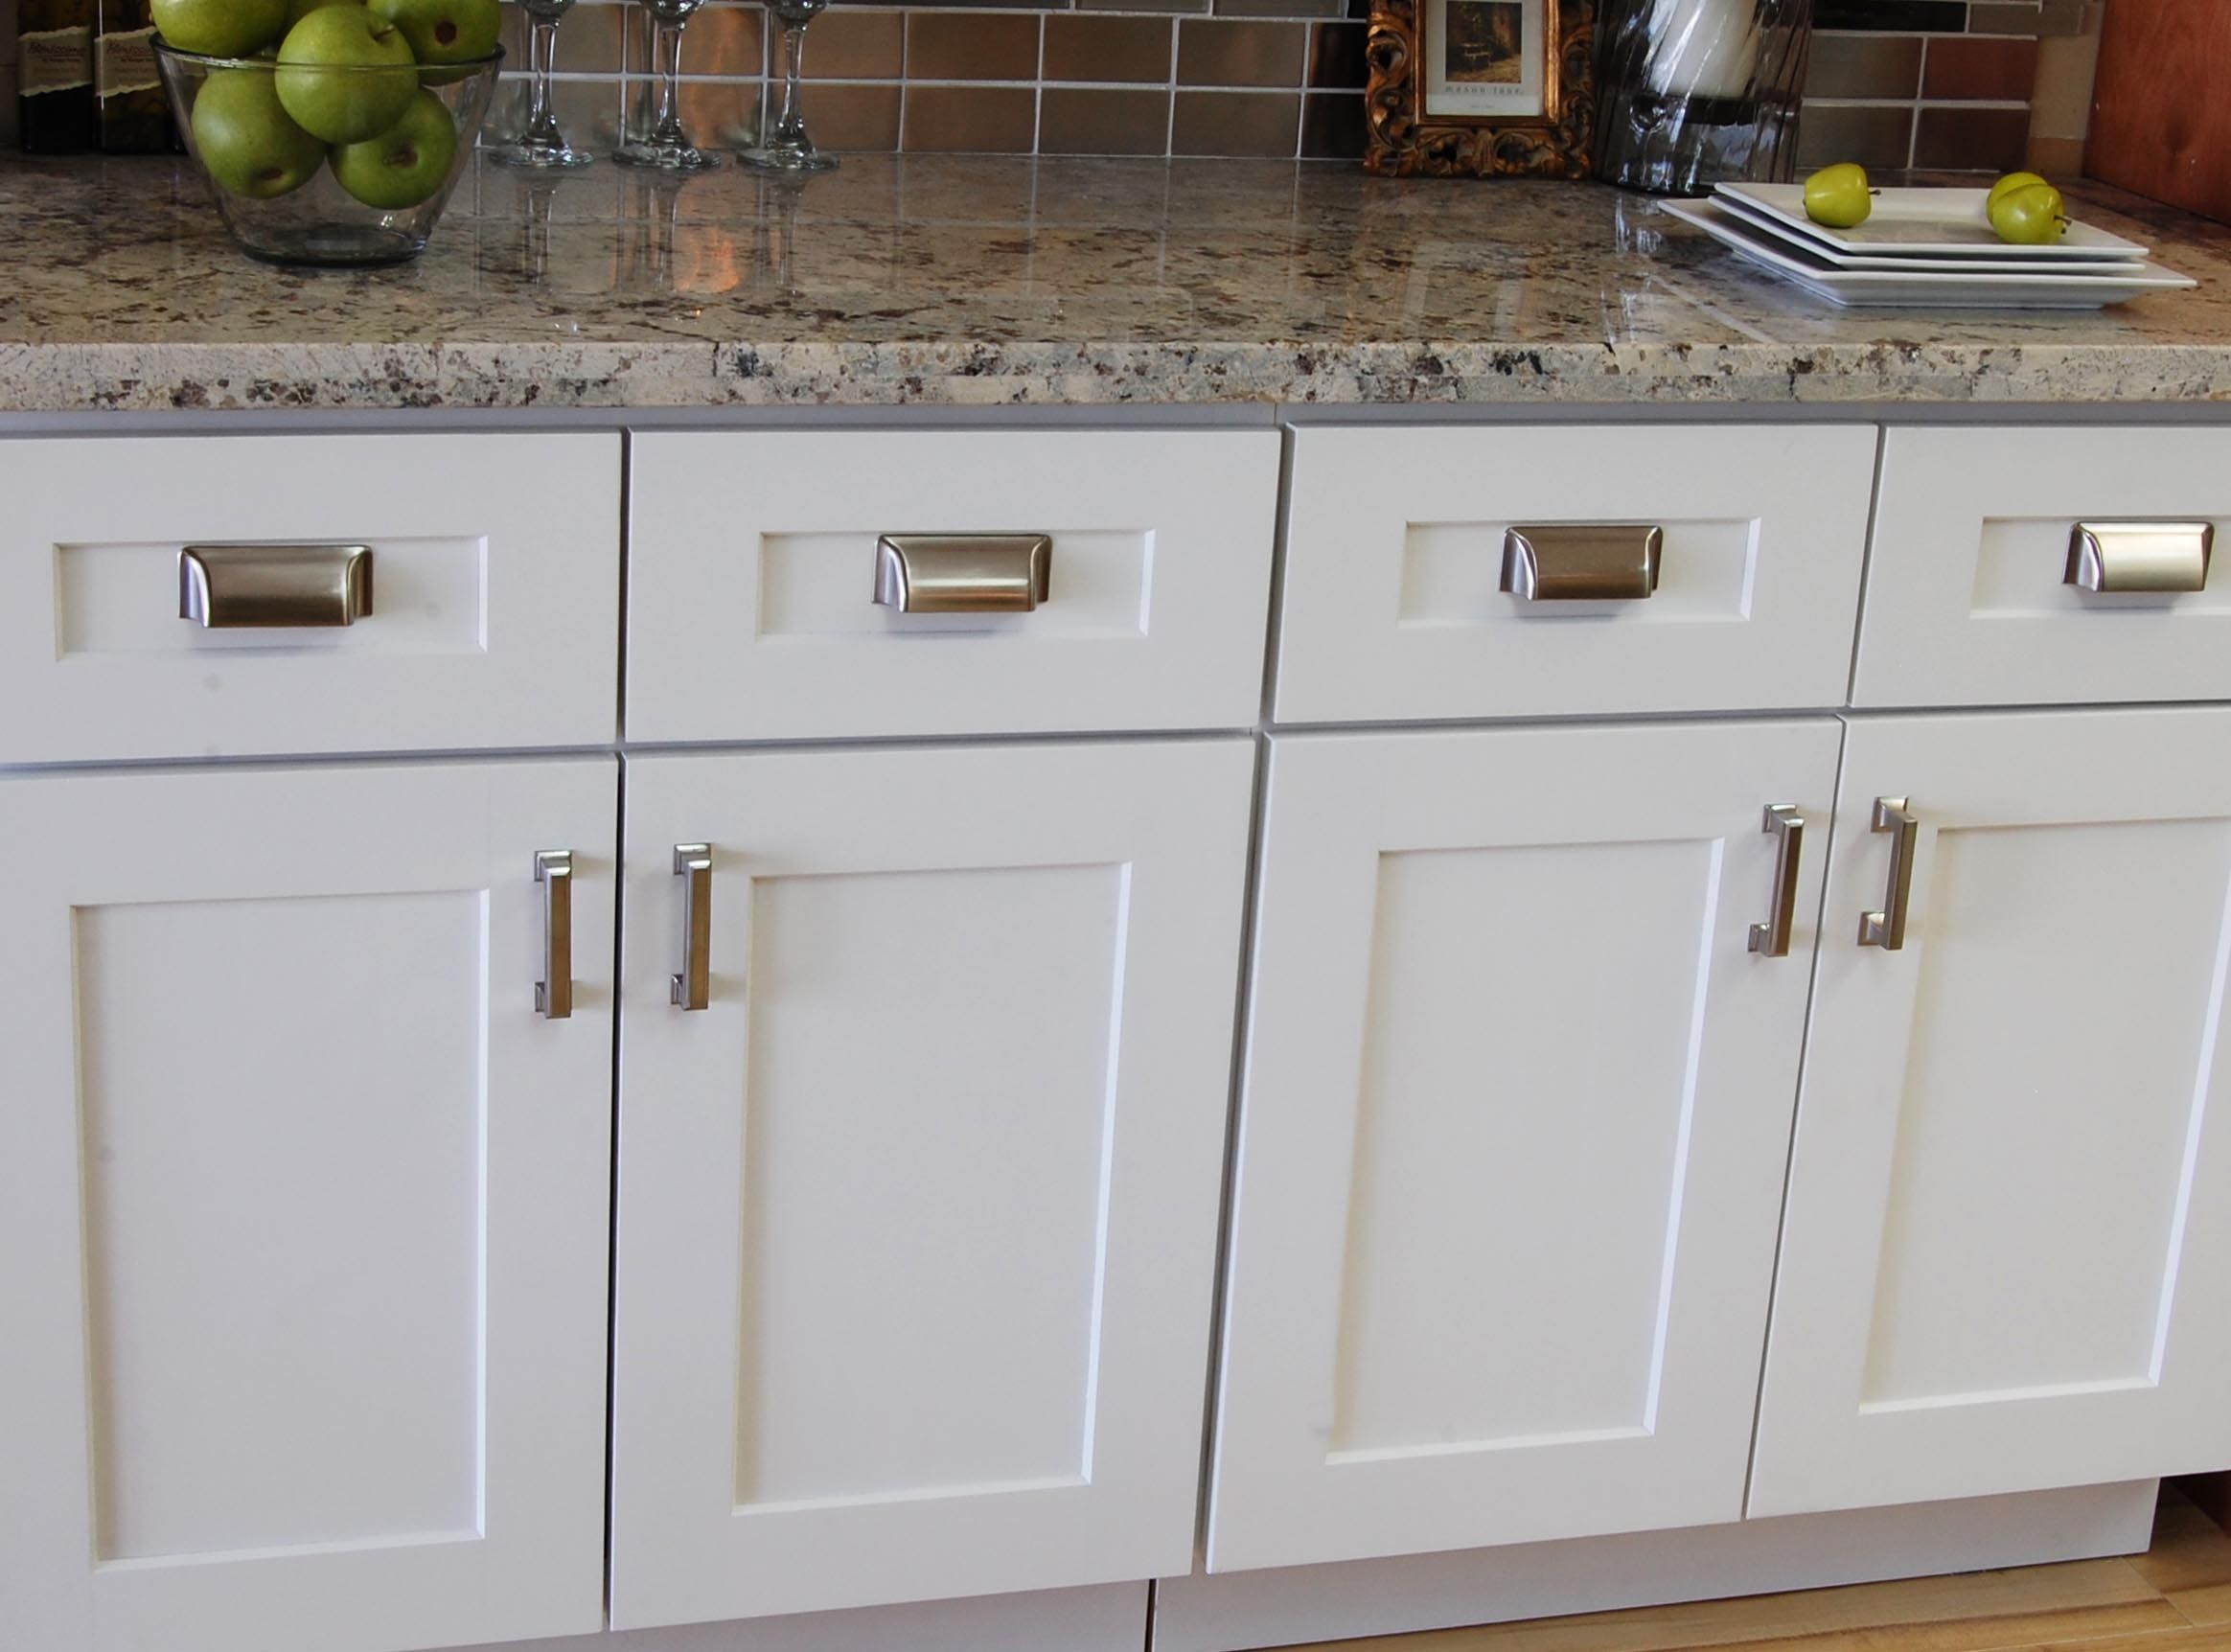 29 Kitchen Cabinet Ideas For 2021 Buying Guide White Shaker Kitchen Cabinets Shaker Style Kitchen Cabinets Kitchen Cabinet Door Styles